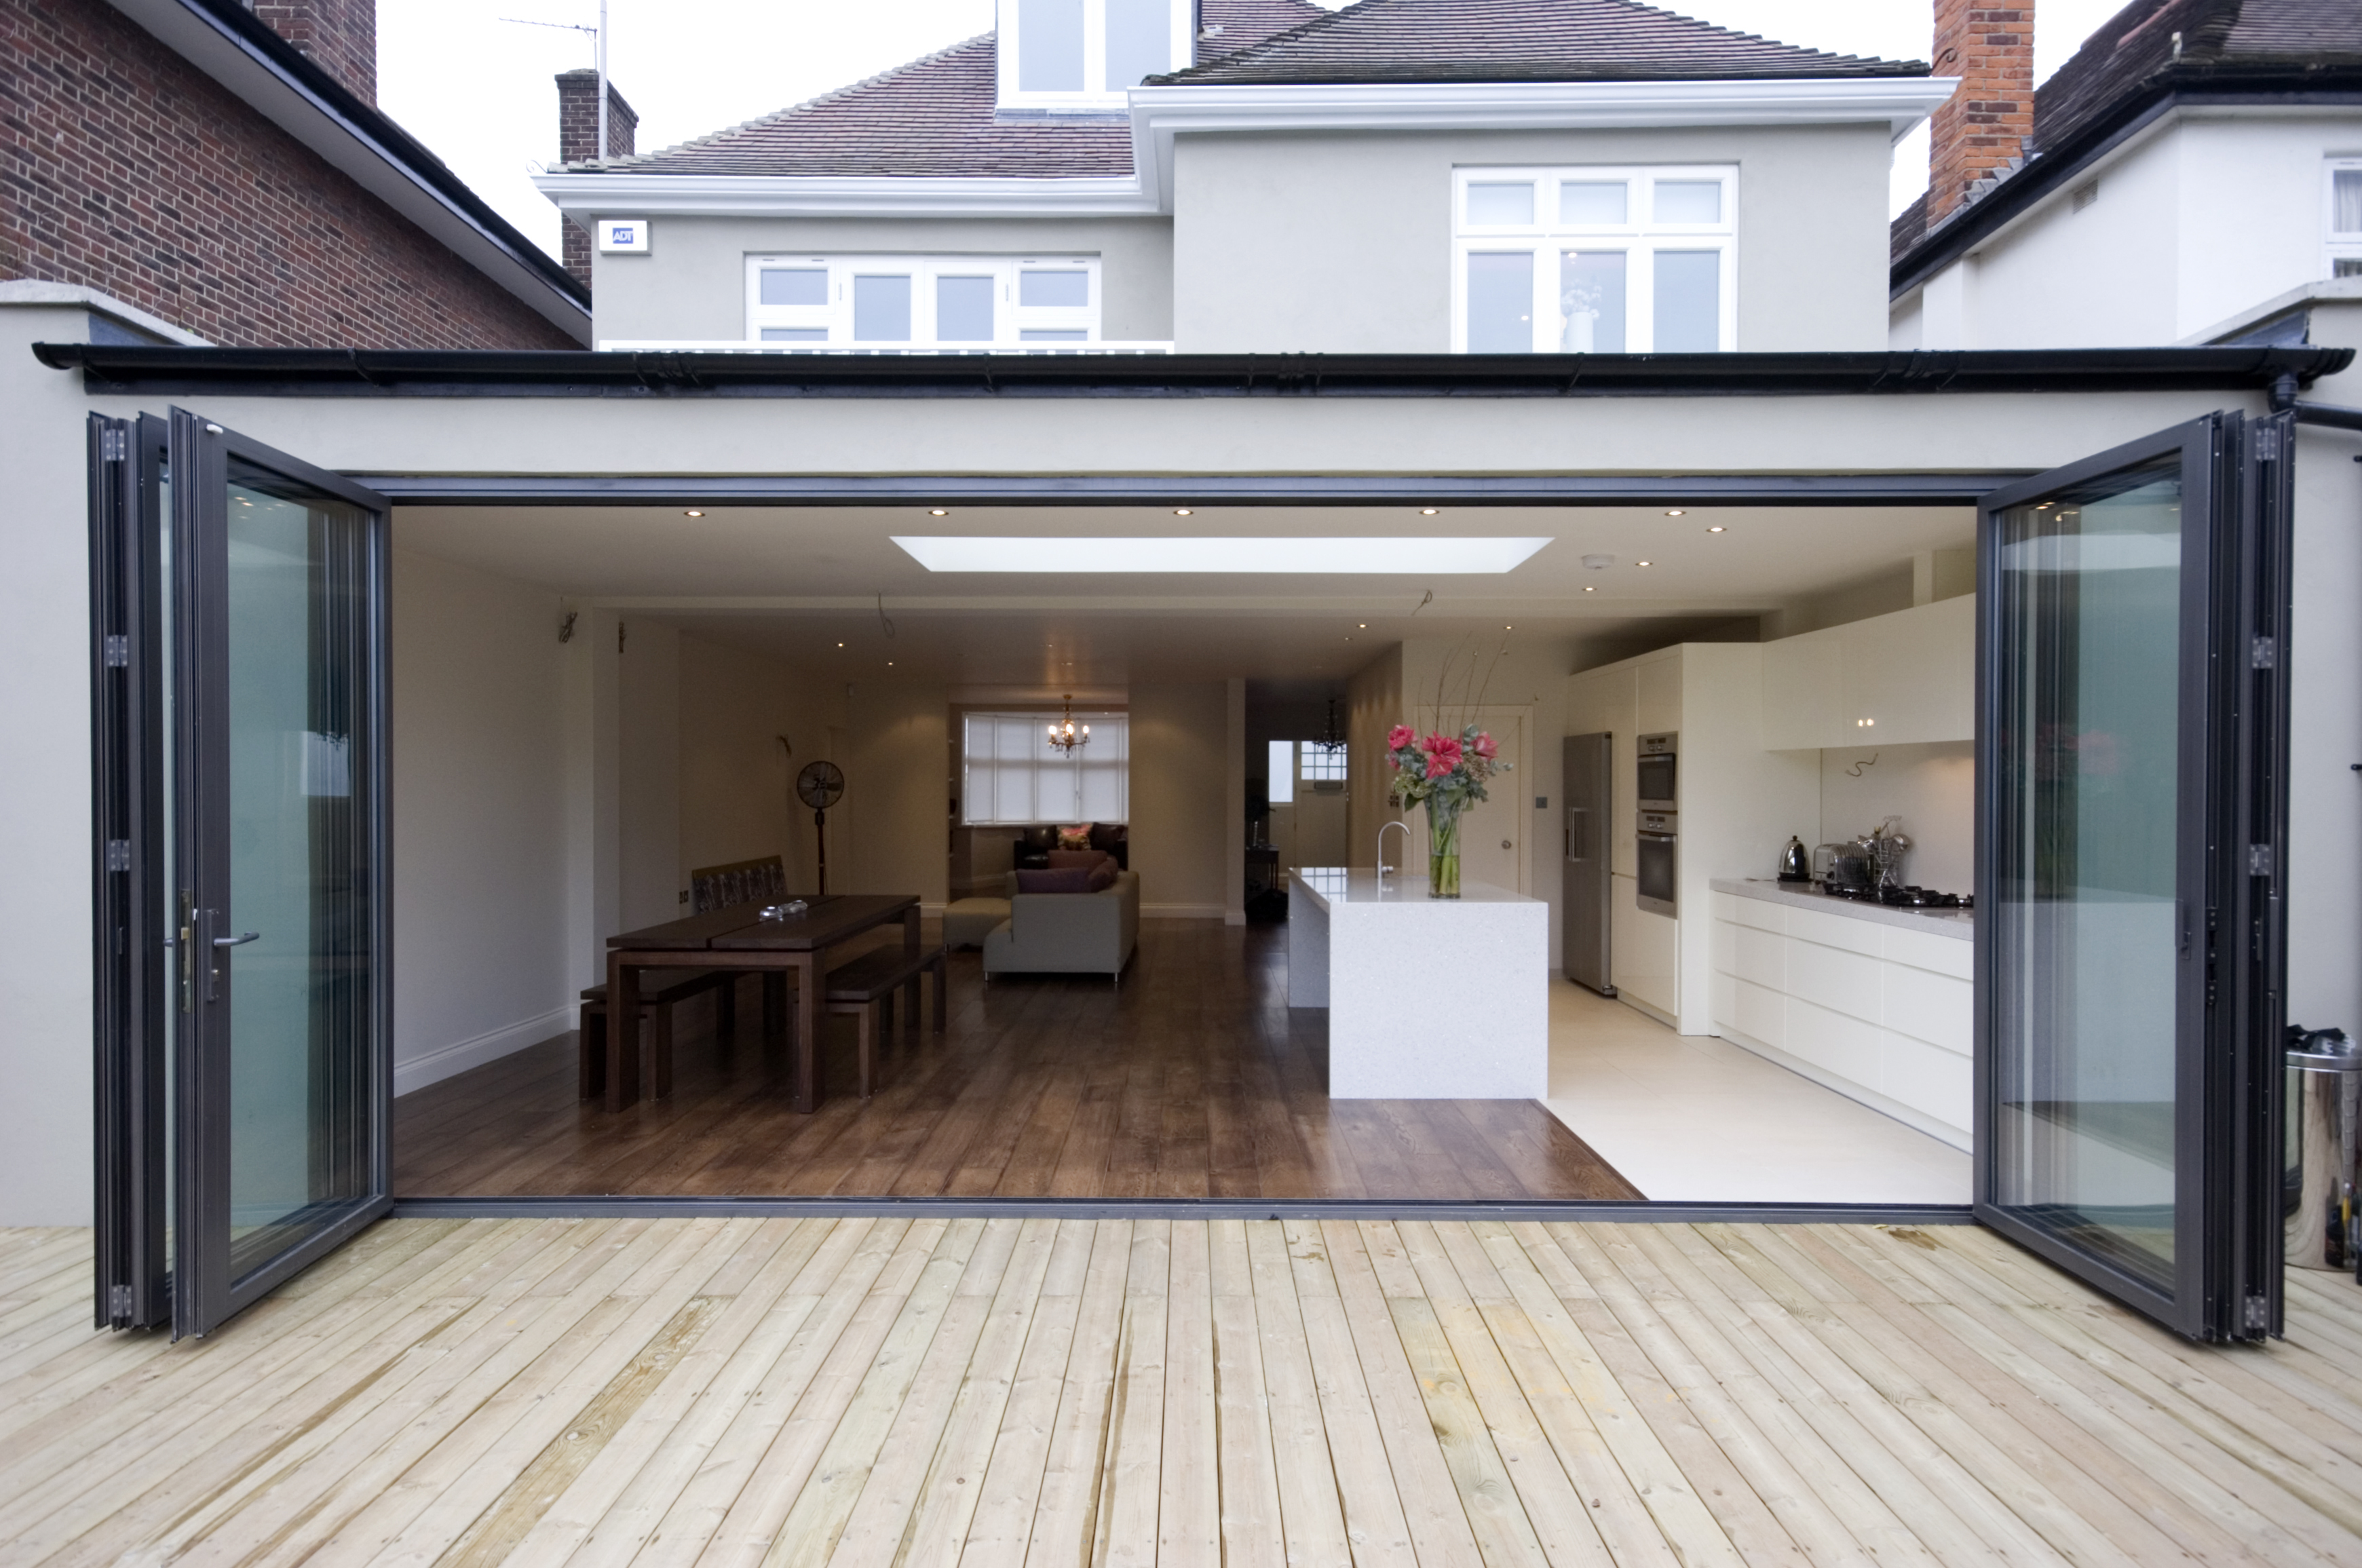 Lantern Roof, Orangery Extension, 321ltd, 321, Quote, Free Price, Free